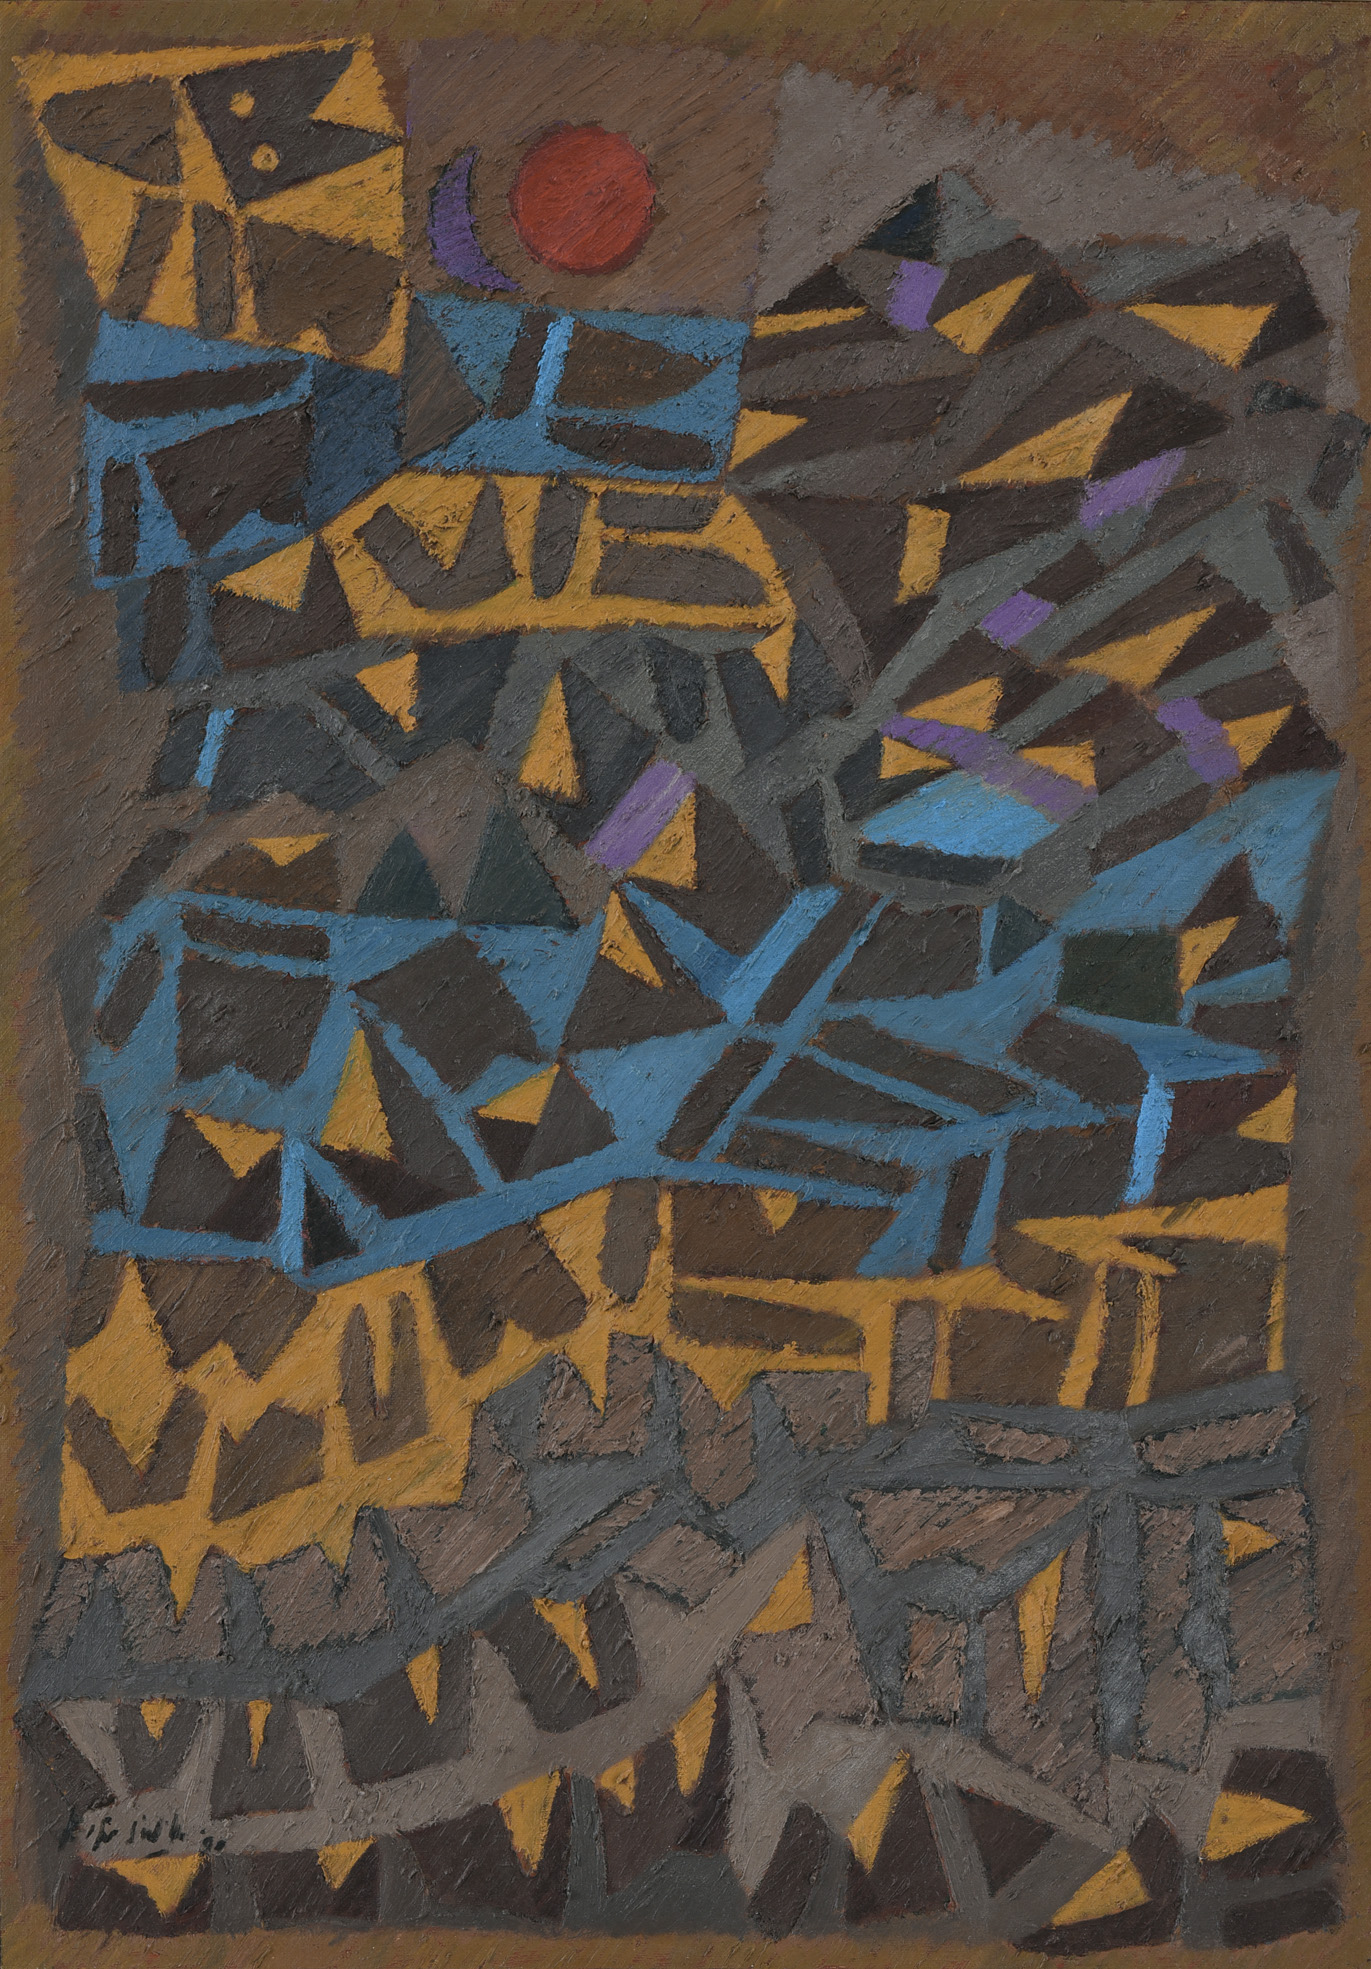 Fadjar Sidik, Space Dynamics, oil on canvas, 101 x 71 cm, 1990